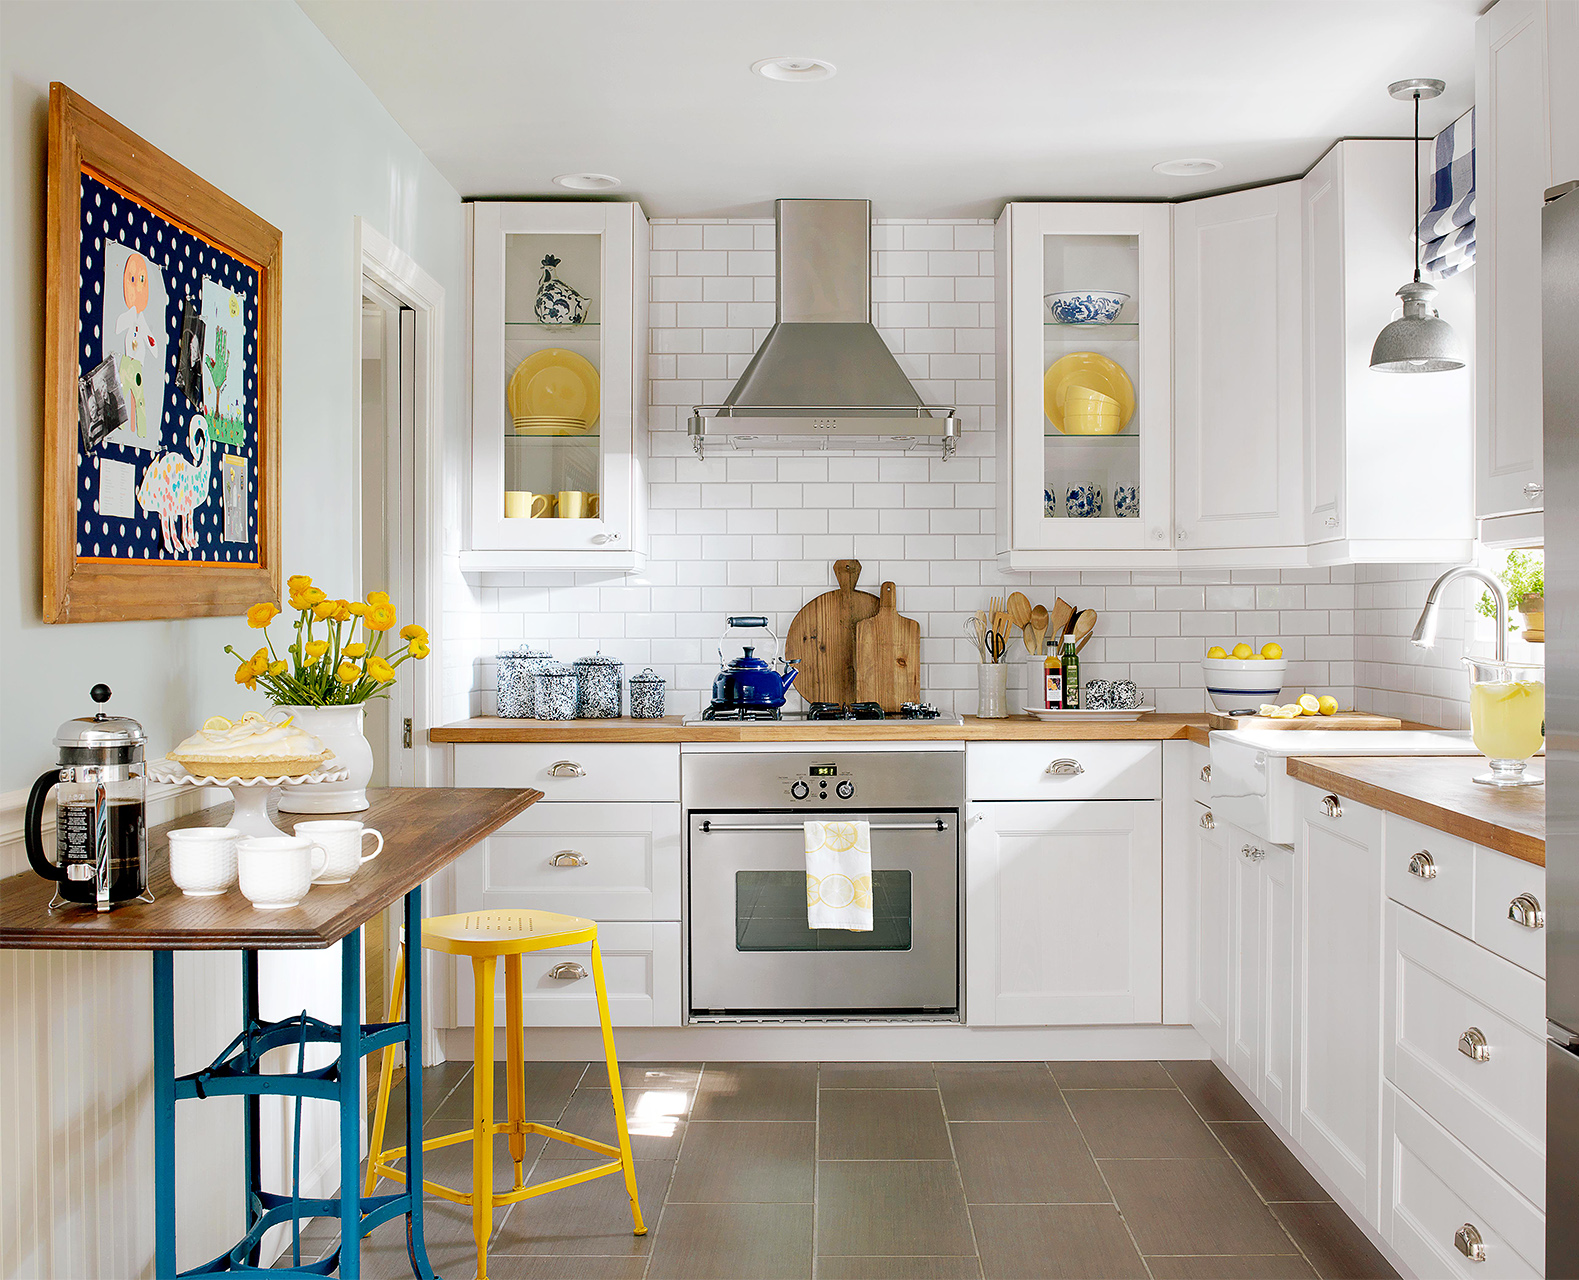 Decorating Strategies For Your Kitchen Stephenson House